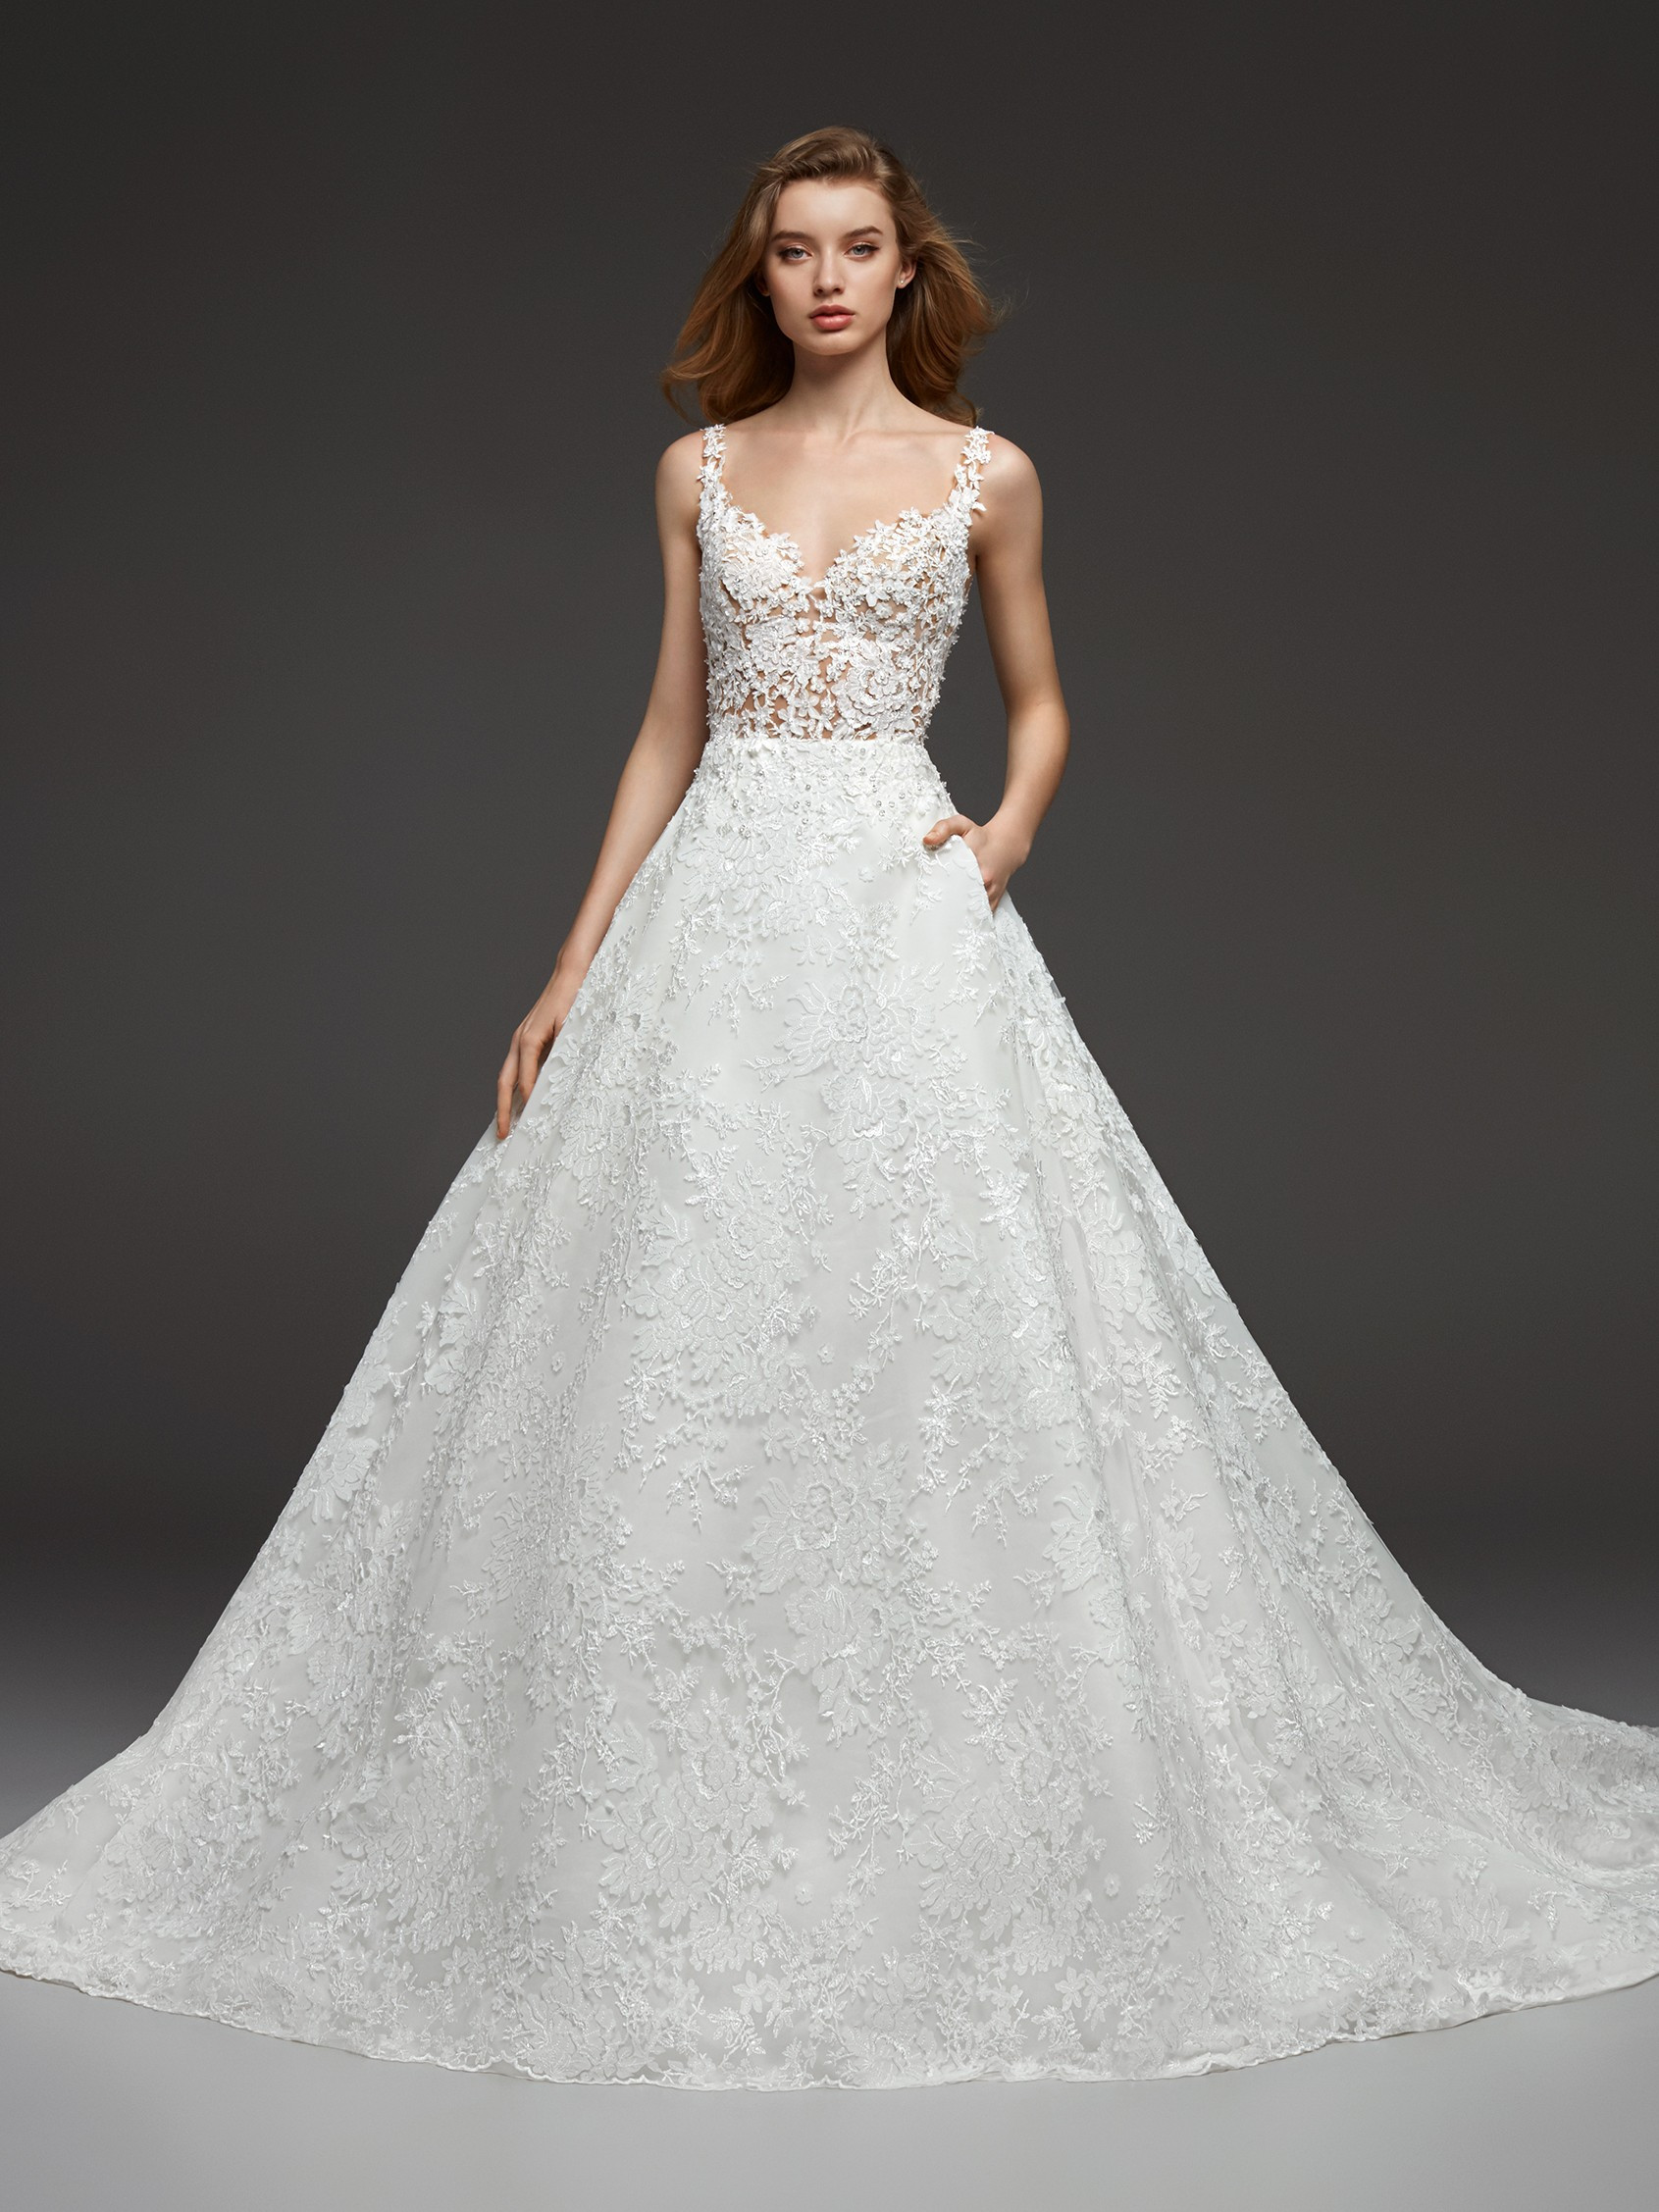 45f3cd40f385 Illusion Beaded Lace V-neck Bodice Ball Gown Lace Wedding Dress | Kleinfeld  Bridal